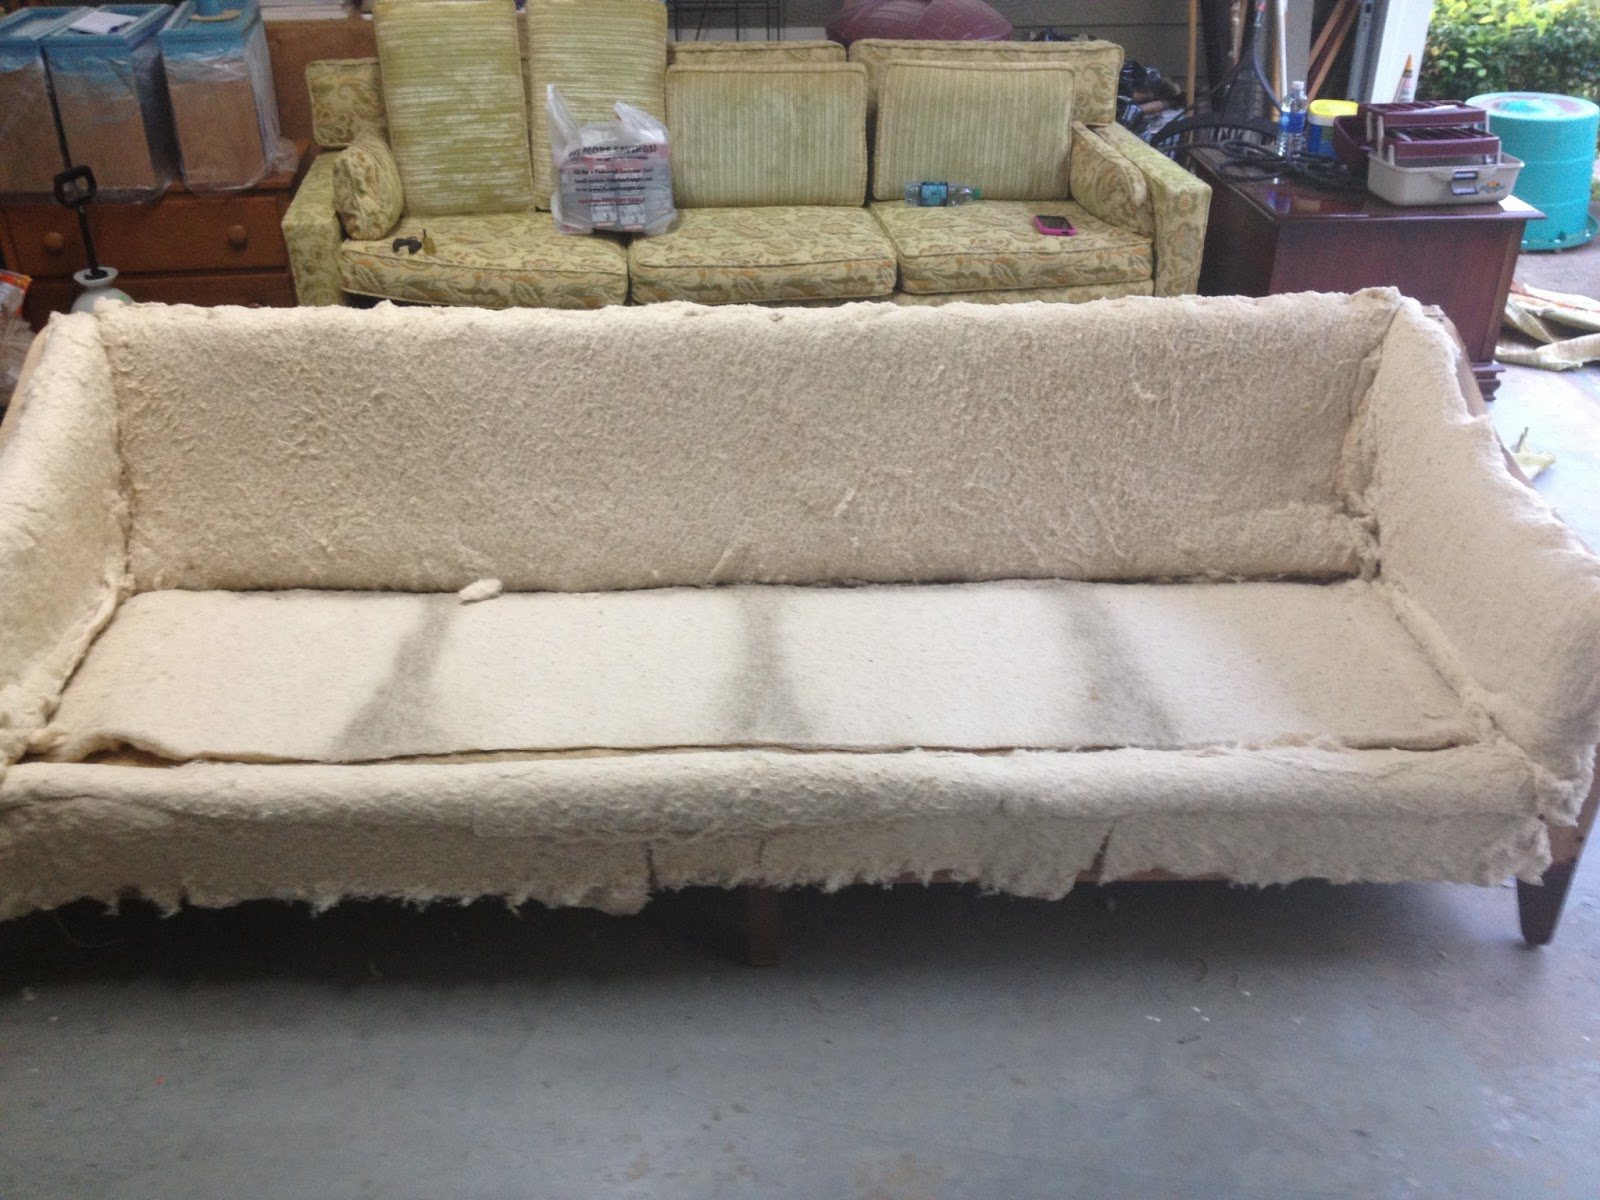 Reupholster Sofa South London Light Gray For Sale Between The Rafters 60s Mod Couch